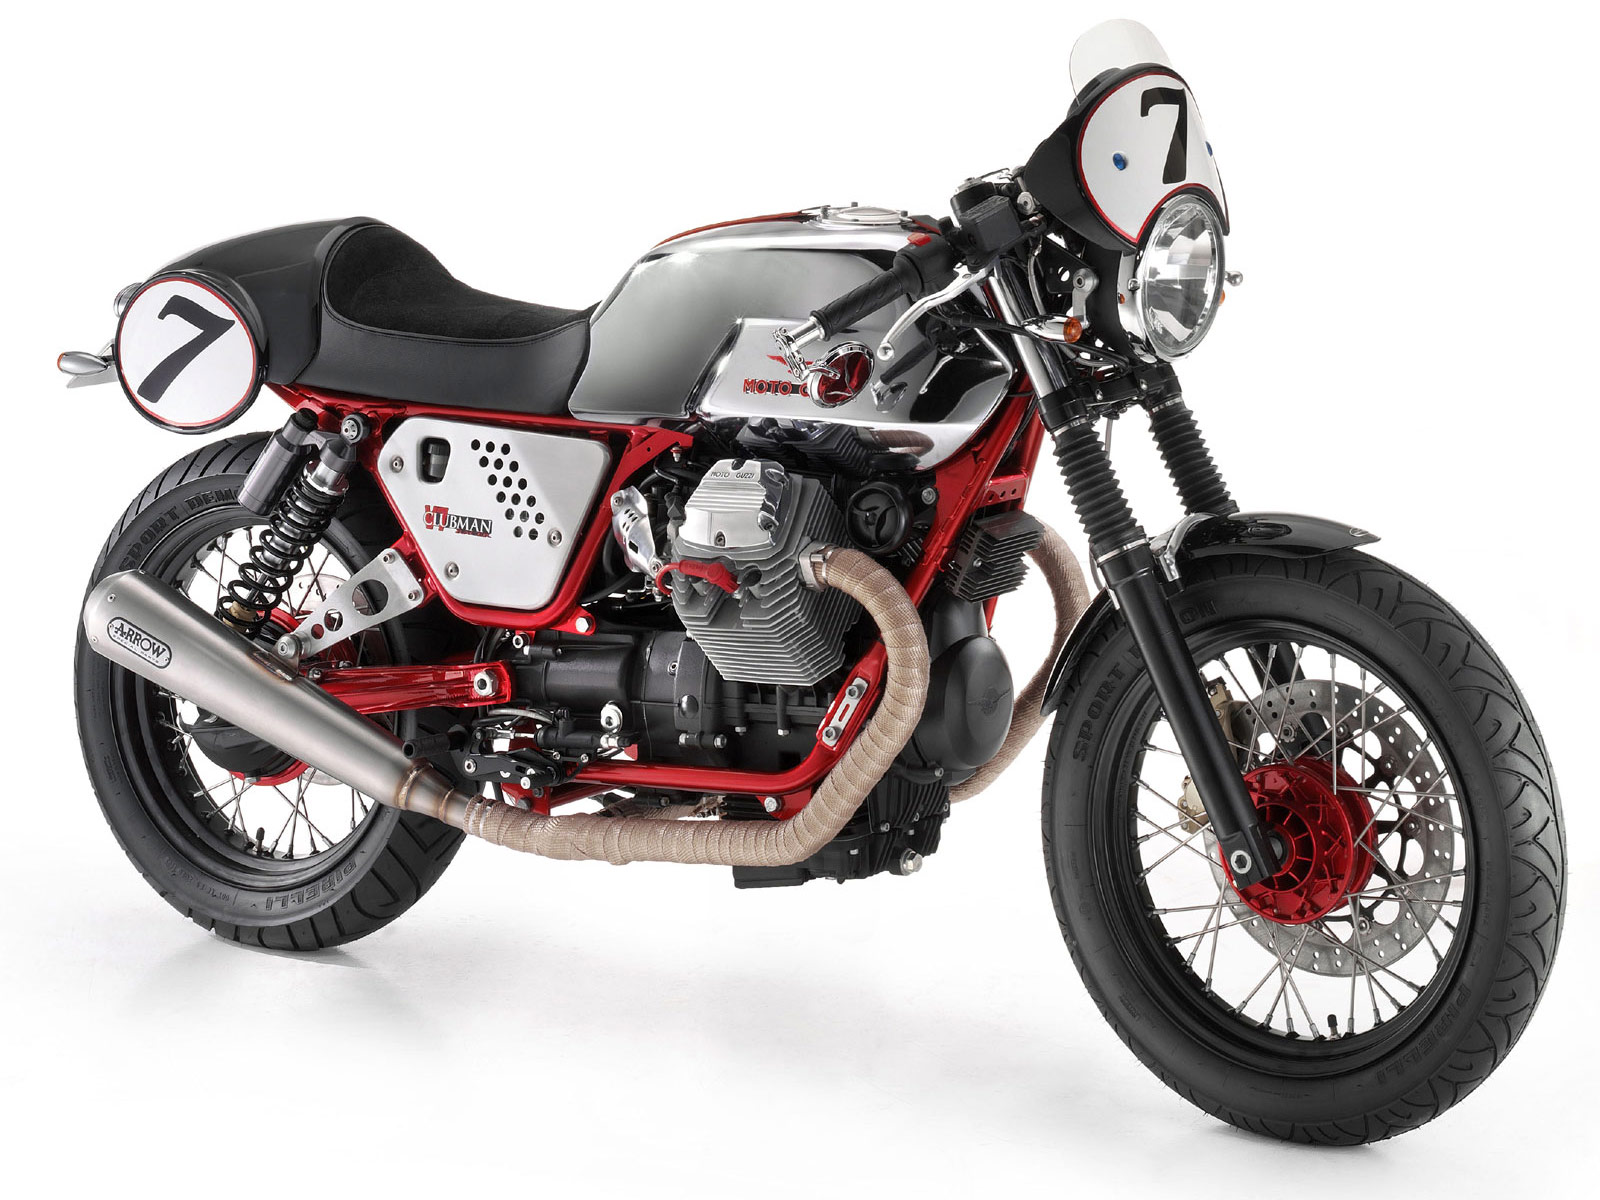 moto guzzi v7 endurance racer kit return of the cafe racers. Black Bedroom Furniture Sets. Home Design Ideas